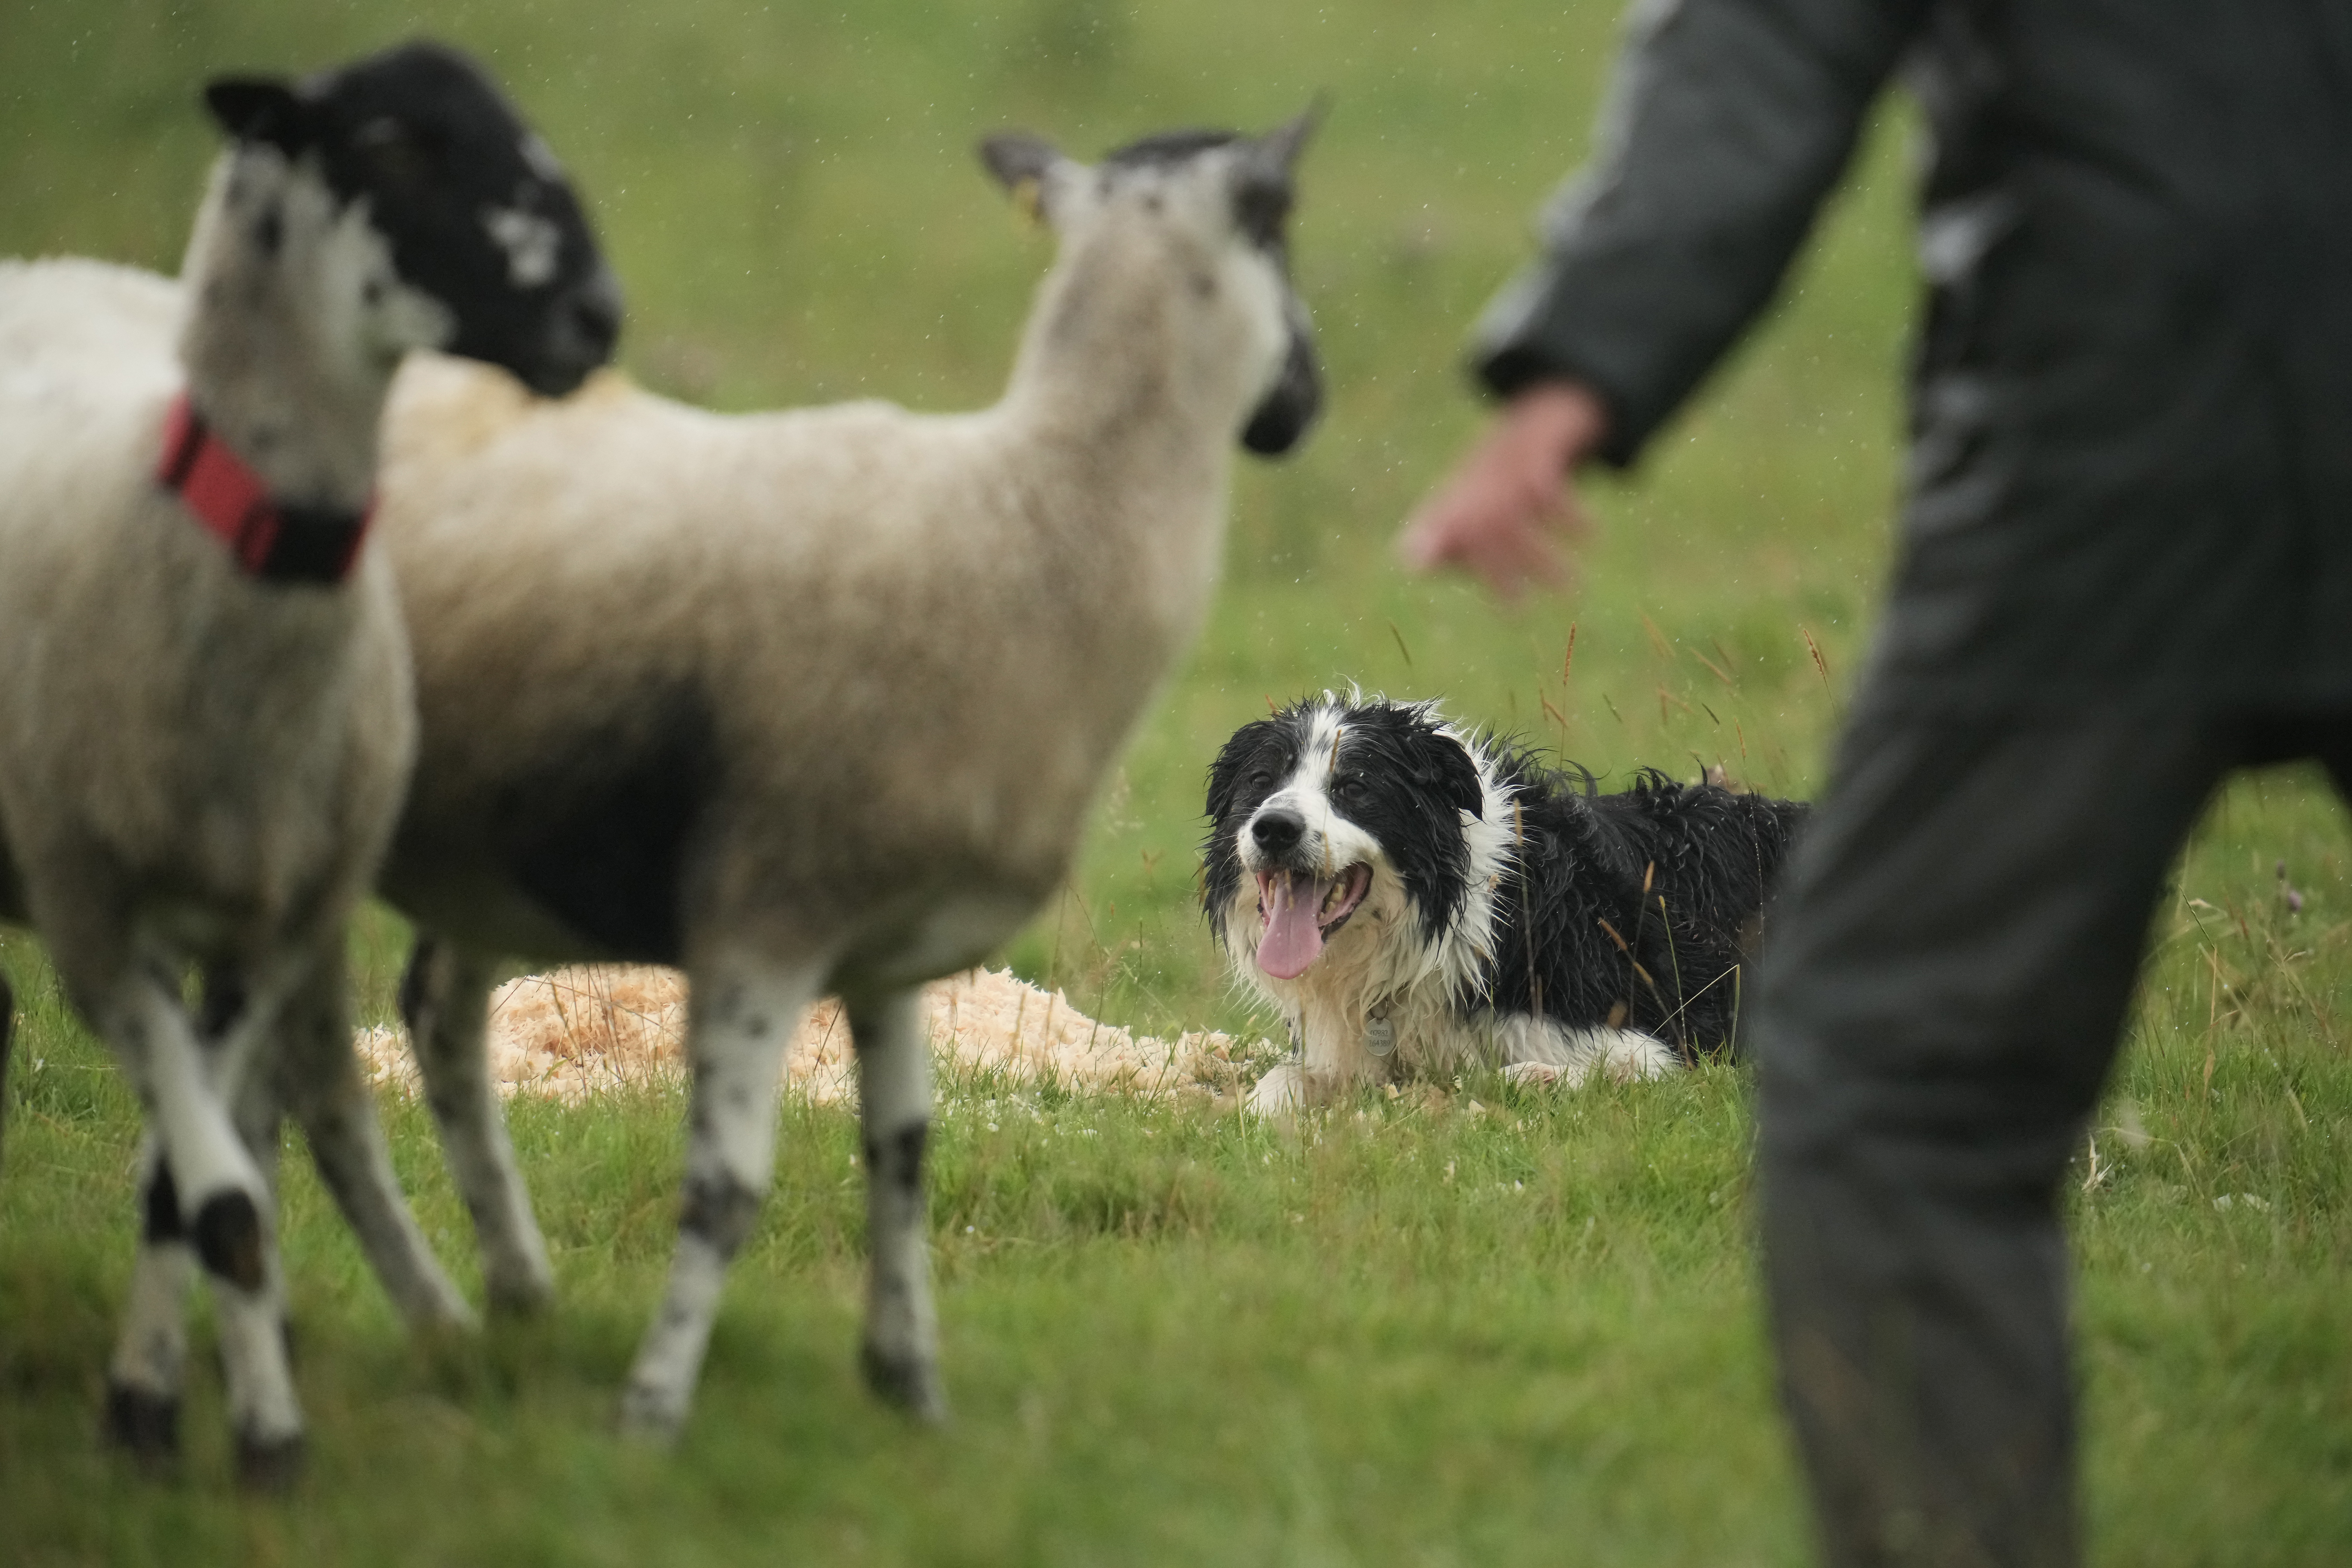 <p>ASHBOURNE, UNITED KINGDOM- JULY 30: Sheepdog Roy puts his skills to the test in the 2021 English National Sheep Dog Trials at Blore Pastures, near Dovedale, in the Peak District on July 30, 2021 in Ashbourne, United Kingdom. Top handlers and dogs from across England are taking part in the historic trial after last years event was cancelled due to the pandemic. (Photo by Christopher Furlong/Getty Images)</p>